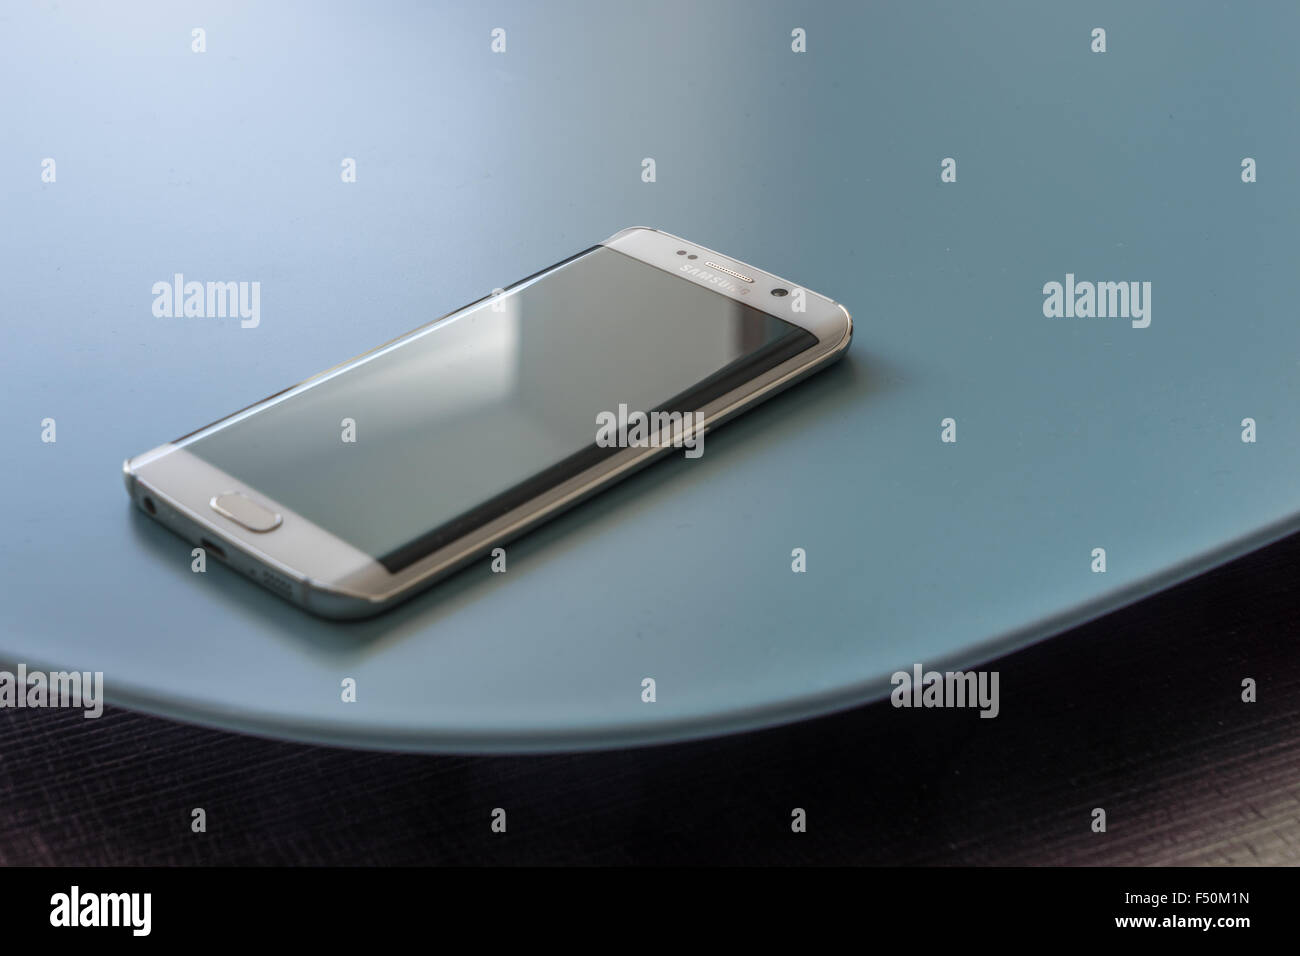 Samsung Galaxy S6 smartphone Edge portant sur une table Photo Stock